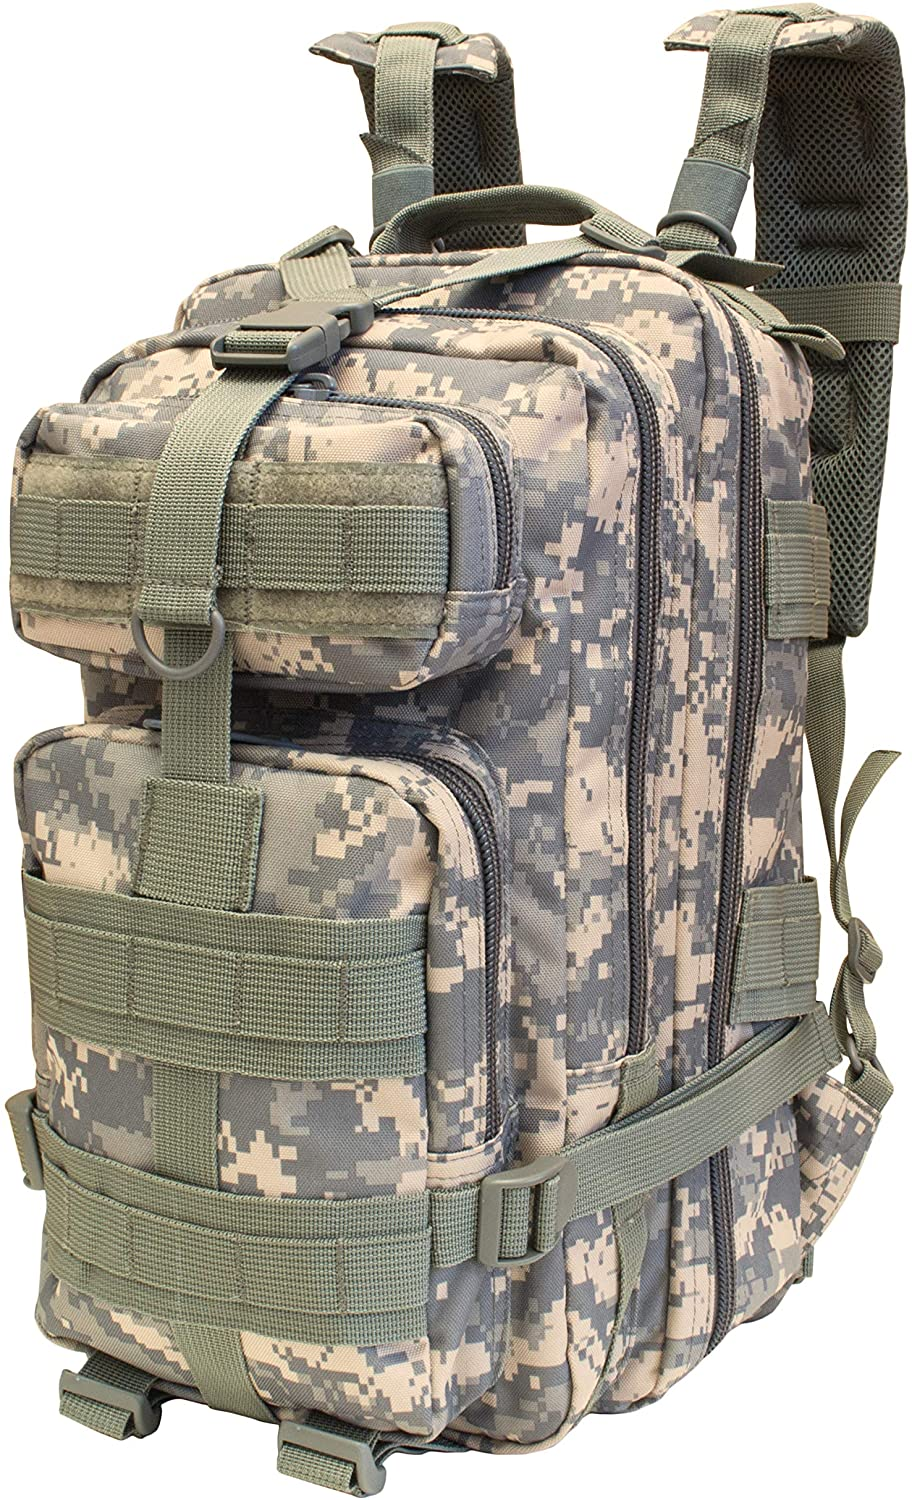 Tackle Backpack For Hiking And Trekking By ZaxLand